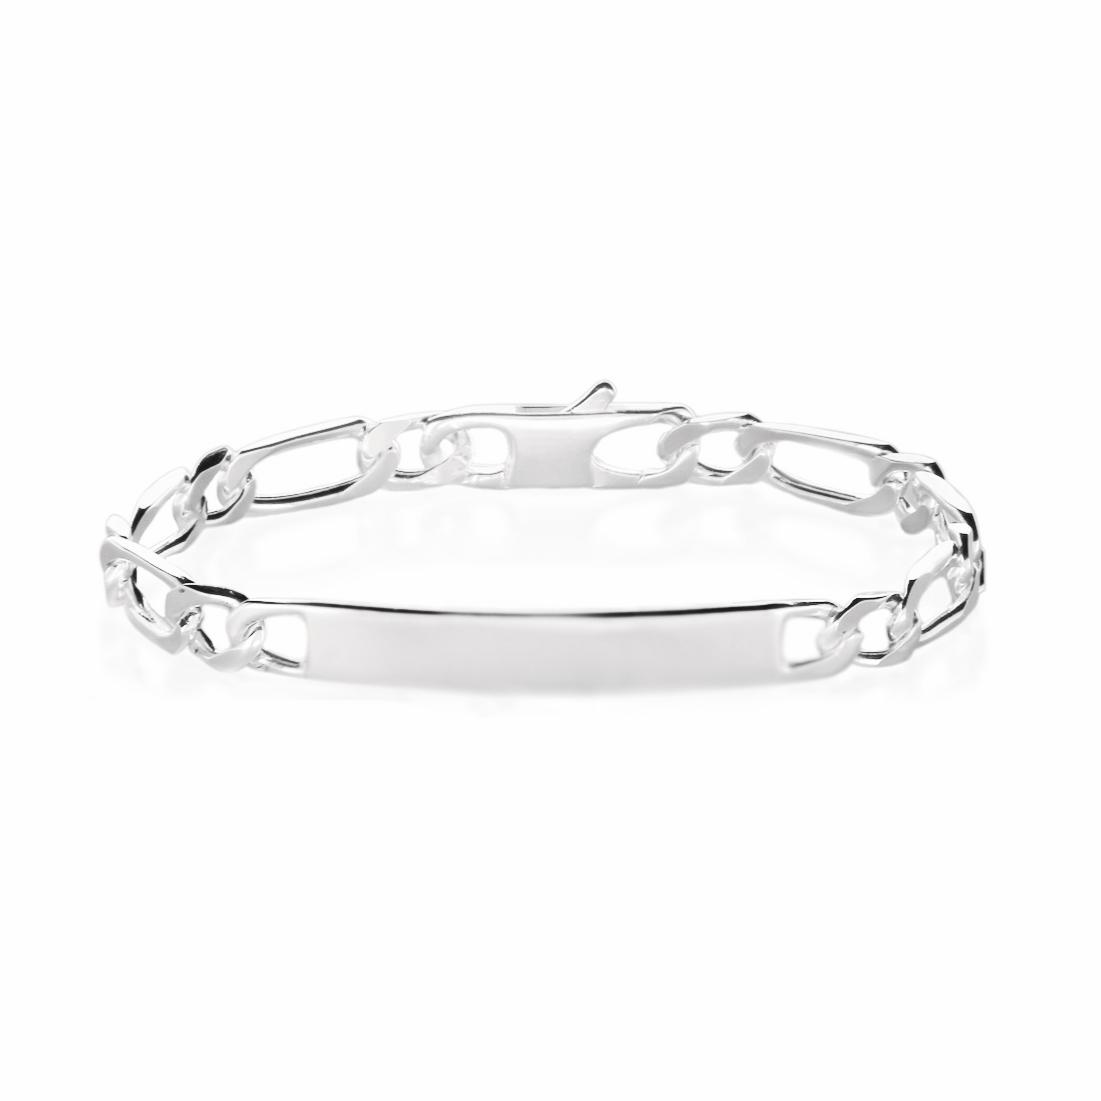 Gourmette femme argent 4 mm maille 1+1 - ANTONIA